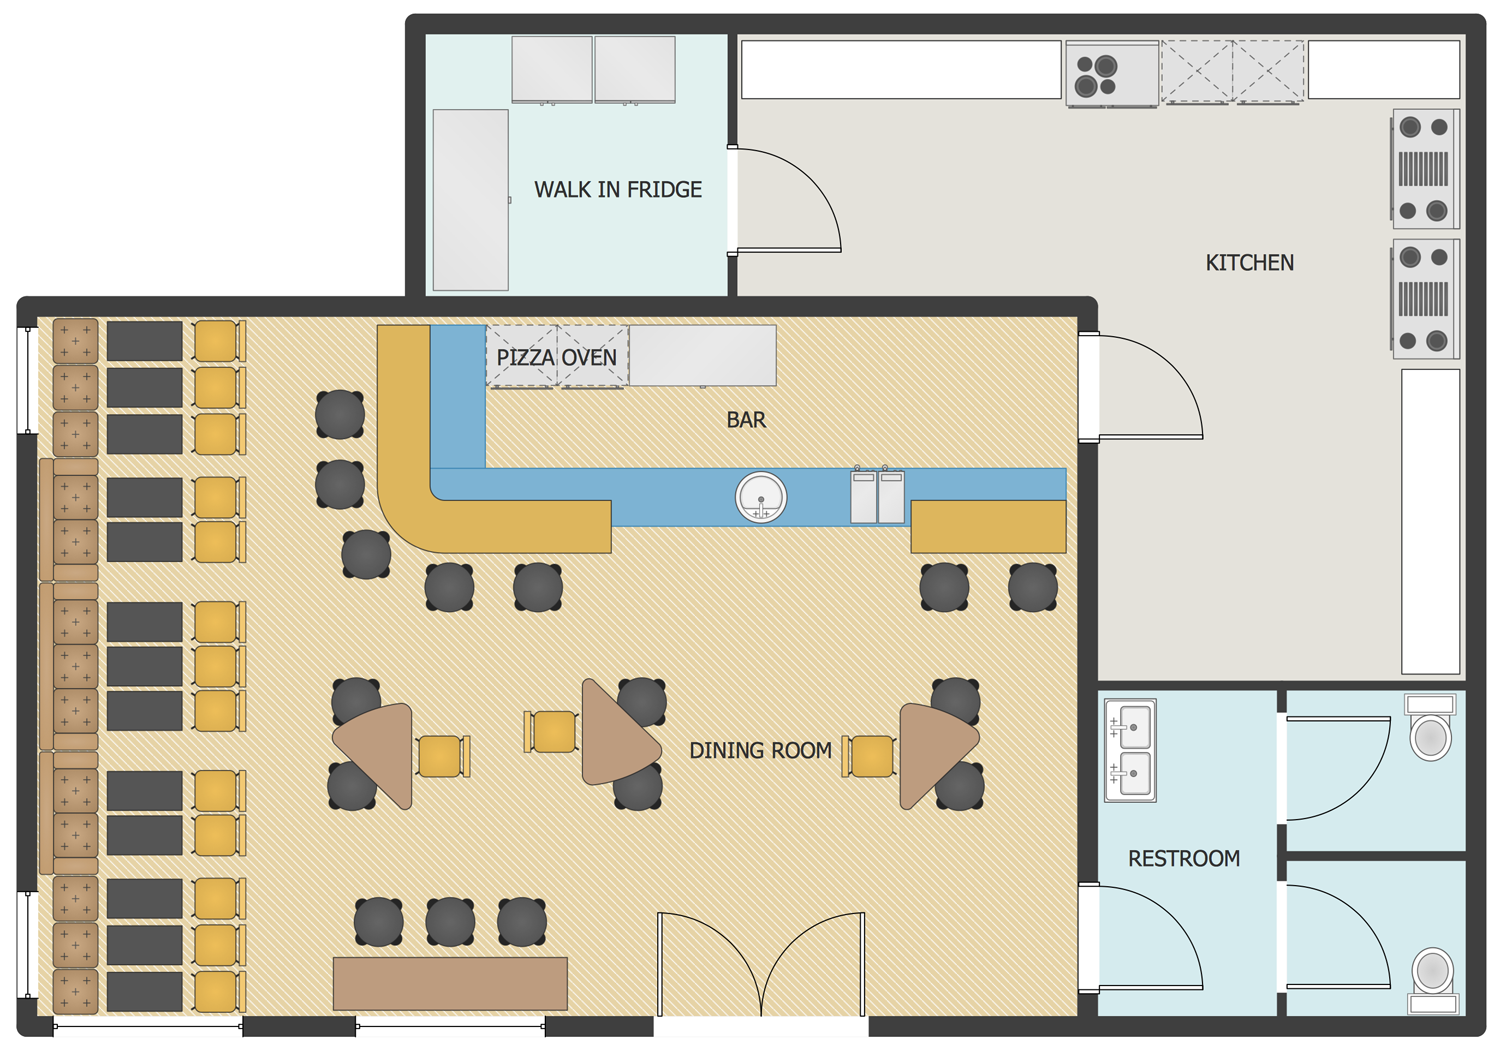 This Sample Shows A Floor 3plan Layout Of Premises In A Pizzeria As Well As The Location Of The Furn Restaurant Floor Plan Cafe Floor Plan Restaurant Plan